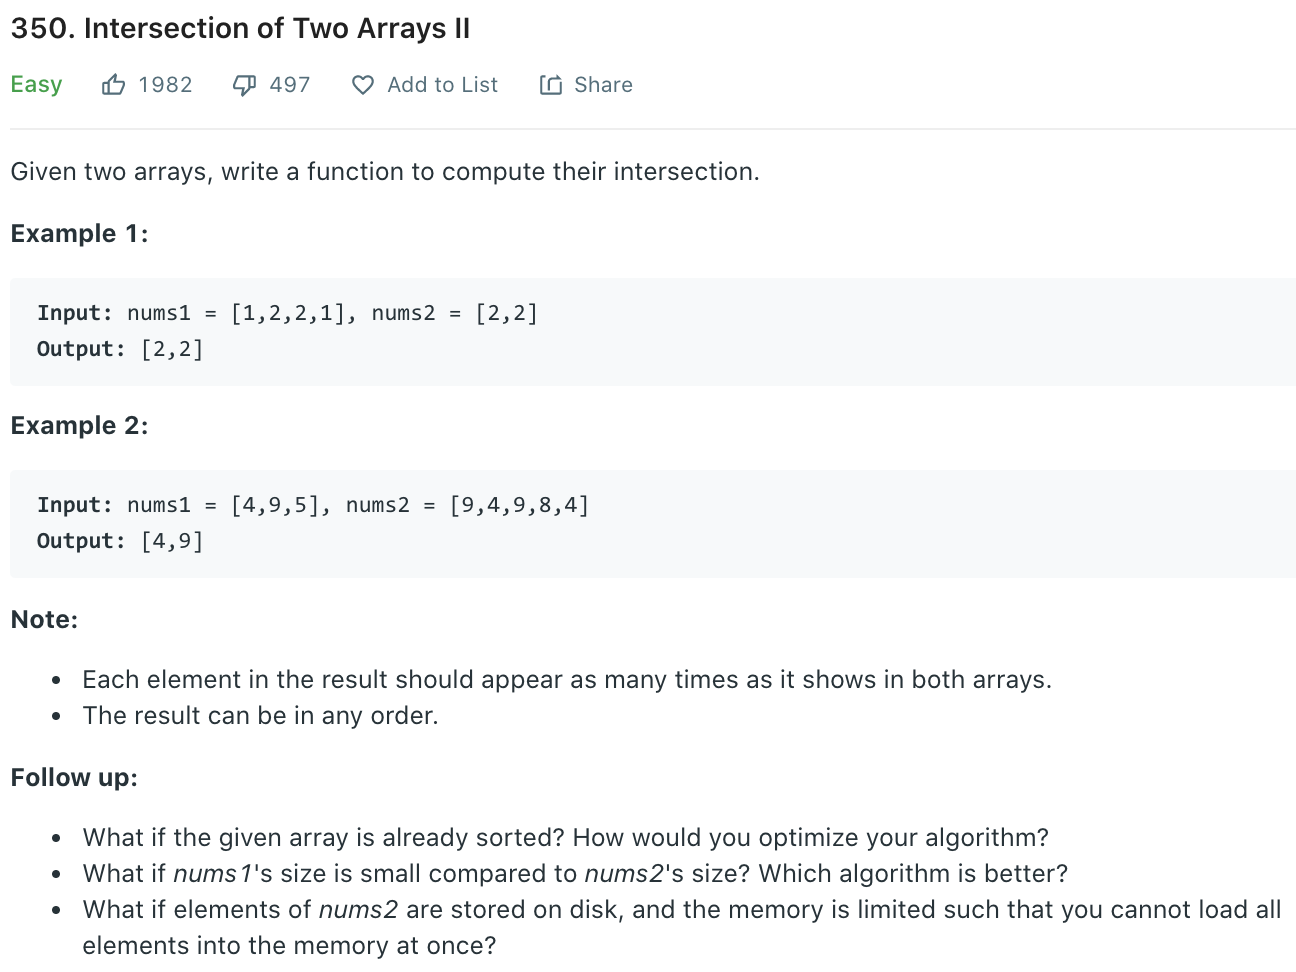 Intersection of Two Arrays II